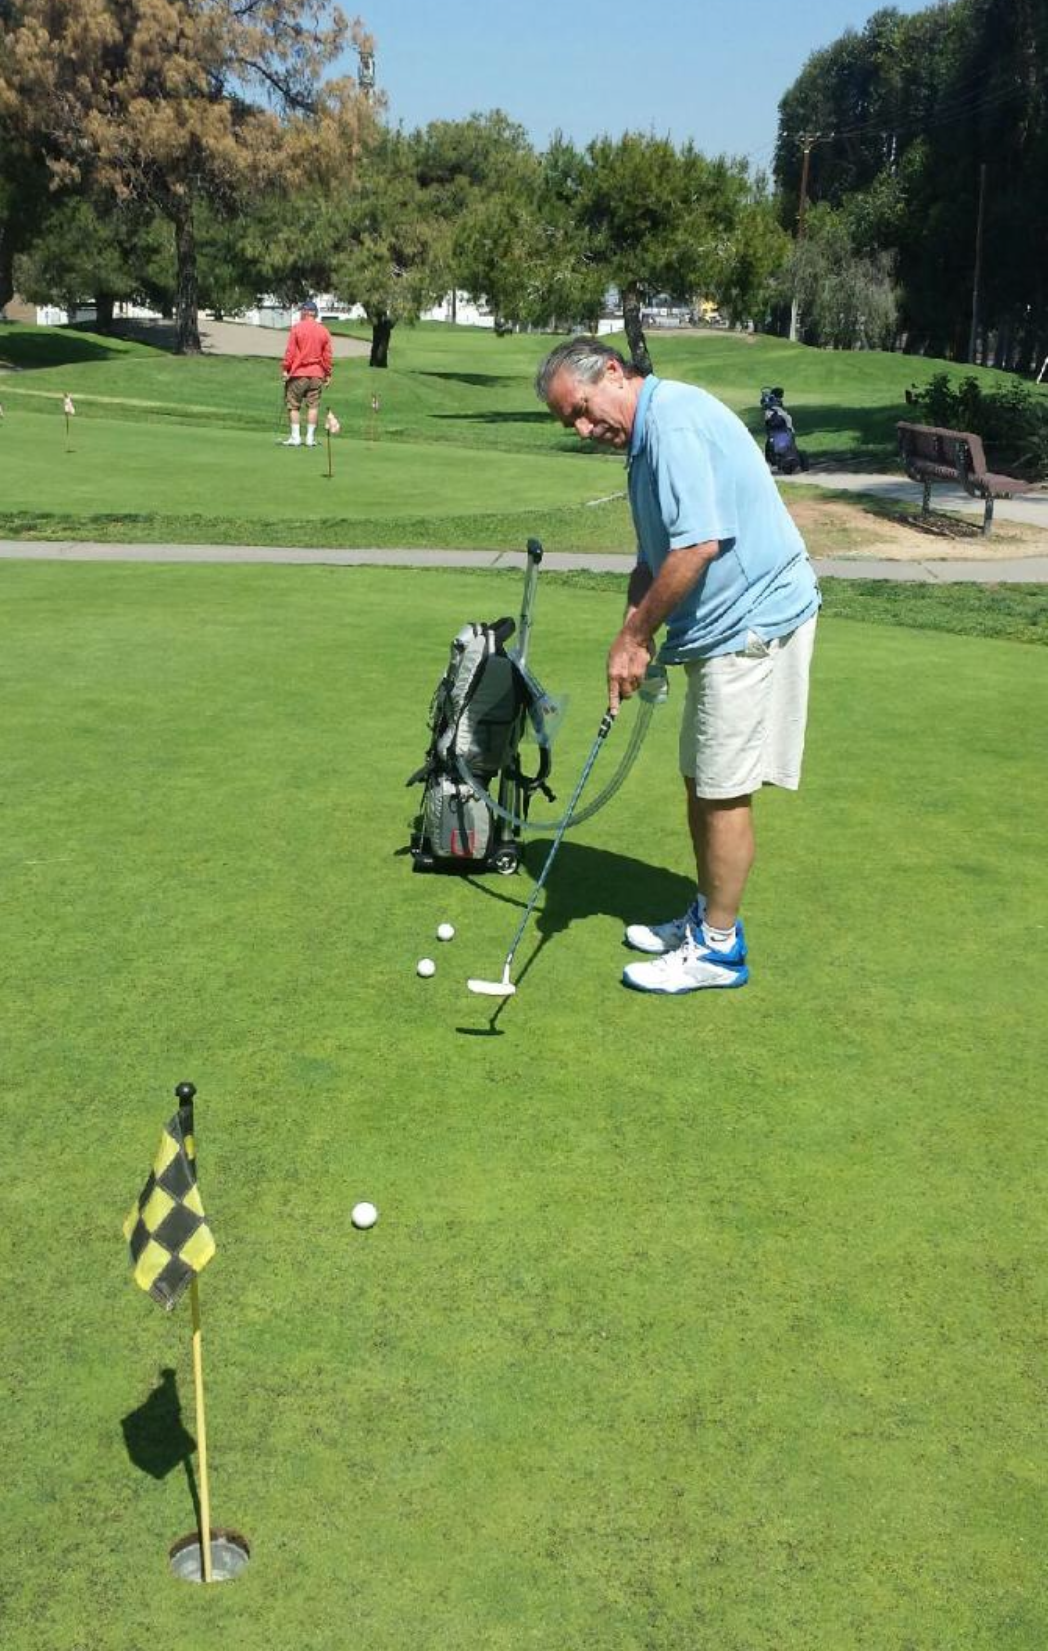 Johnny Lemucchi on the Putting Greens